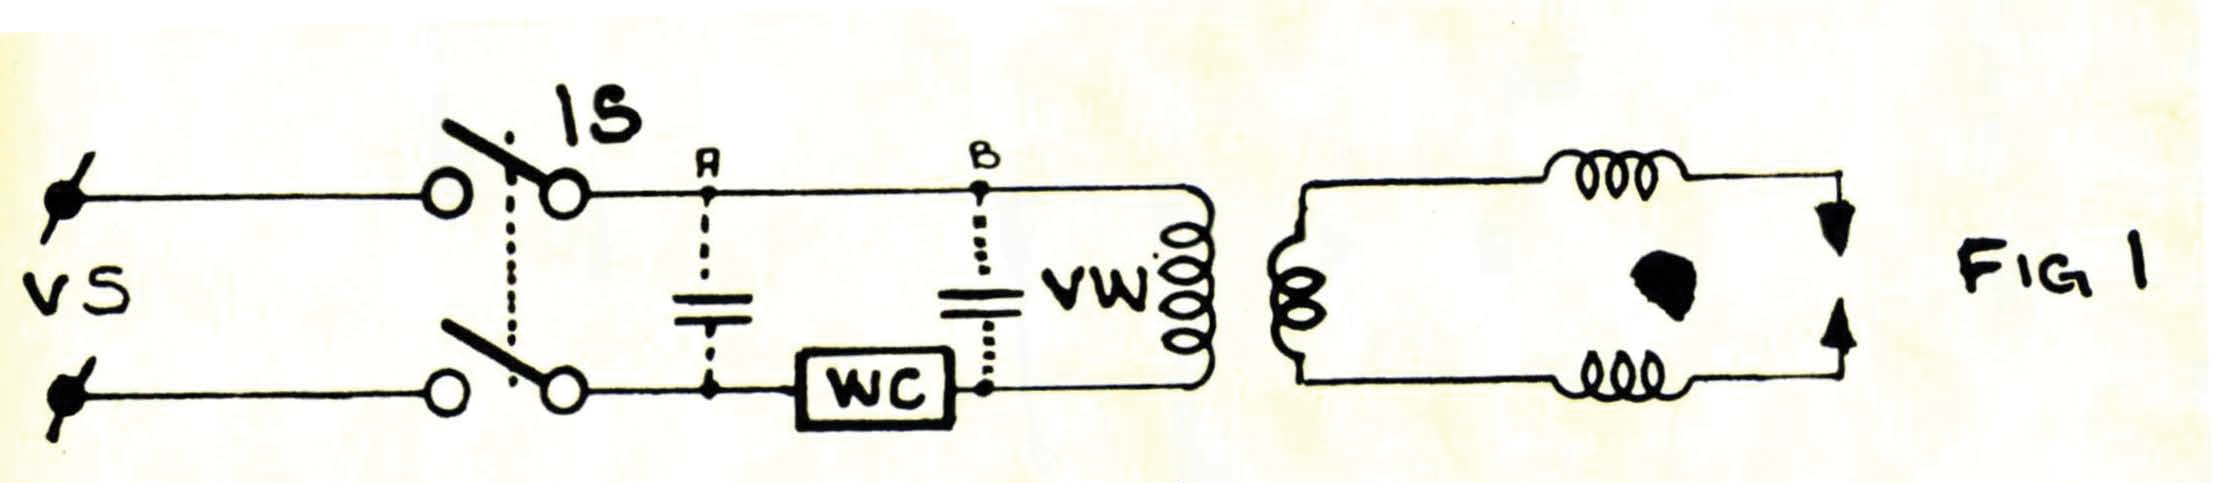 Correction Of Power Factor On Resistance Welding Machine Loads Ee Arc Diagram 1 A Typical Simplified Circuit